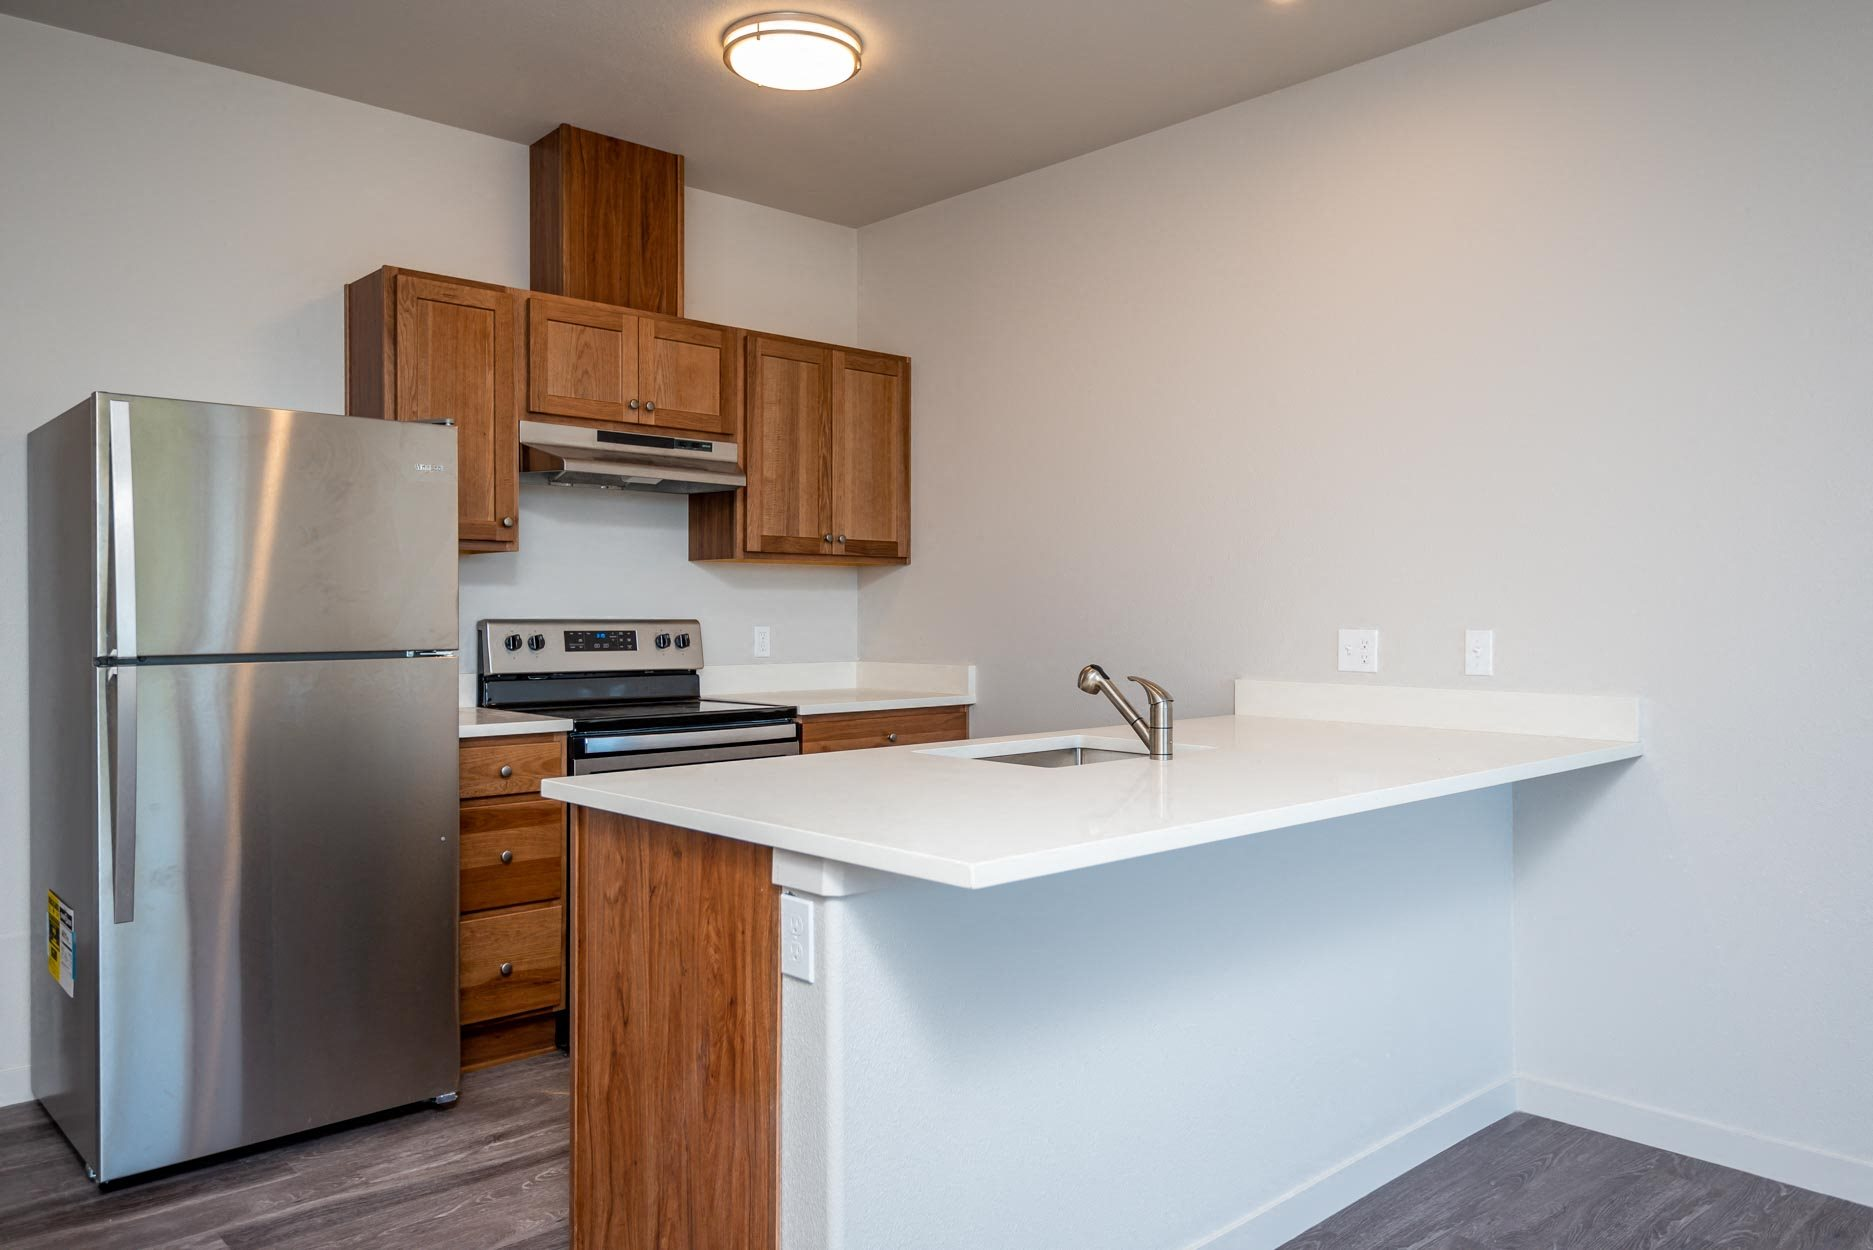 Galley style kitchen with white countertops, stainless steel refrigerator, stove, and hood vent. Brown cabinetry.